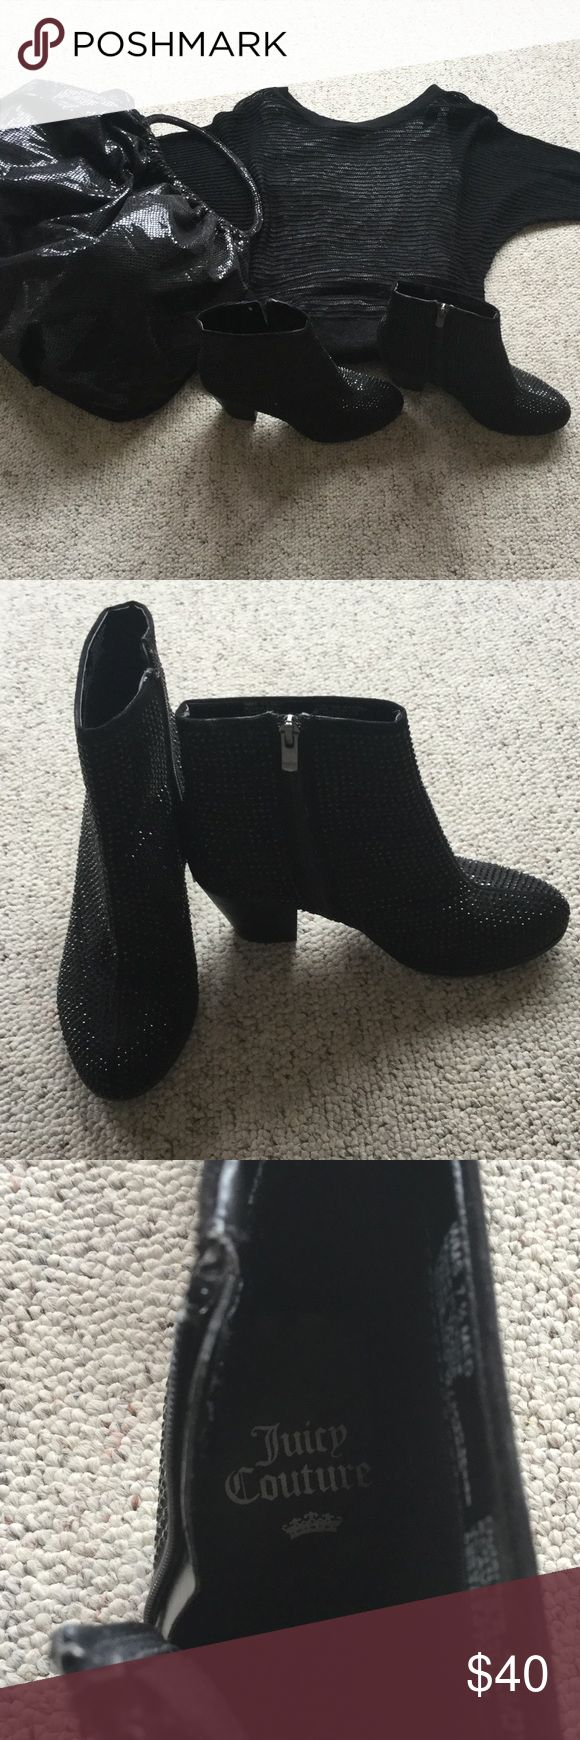 Juicy Couture black sequin ankle boots size 7-1/2 Juicy Couture black sequin ankle boots size 7-1/2, super cute. Excellent condition Juicy Couture Shoes Ankle Boots & Booties